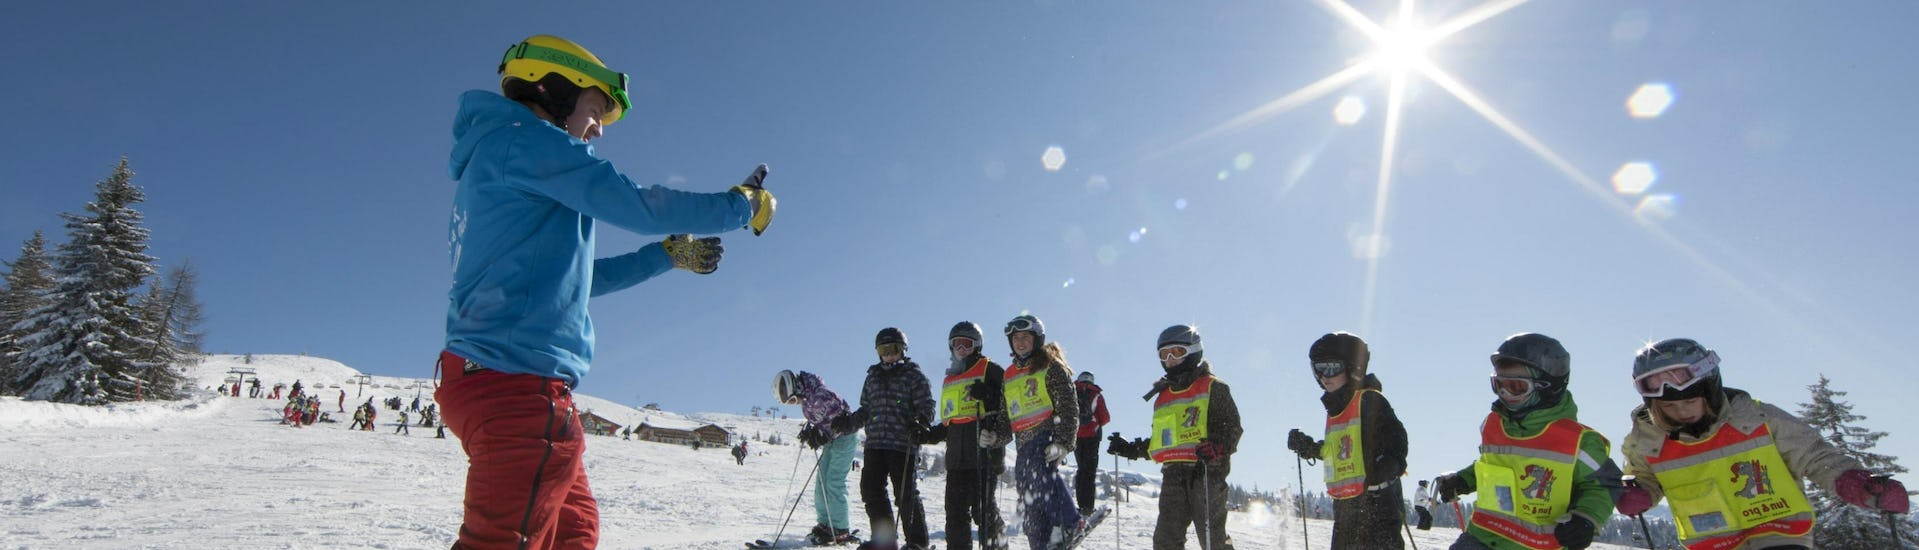 A ski instructor is holding one of the many group ski lessons in the ski resort of La Toussuire.